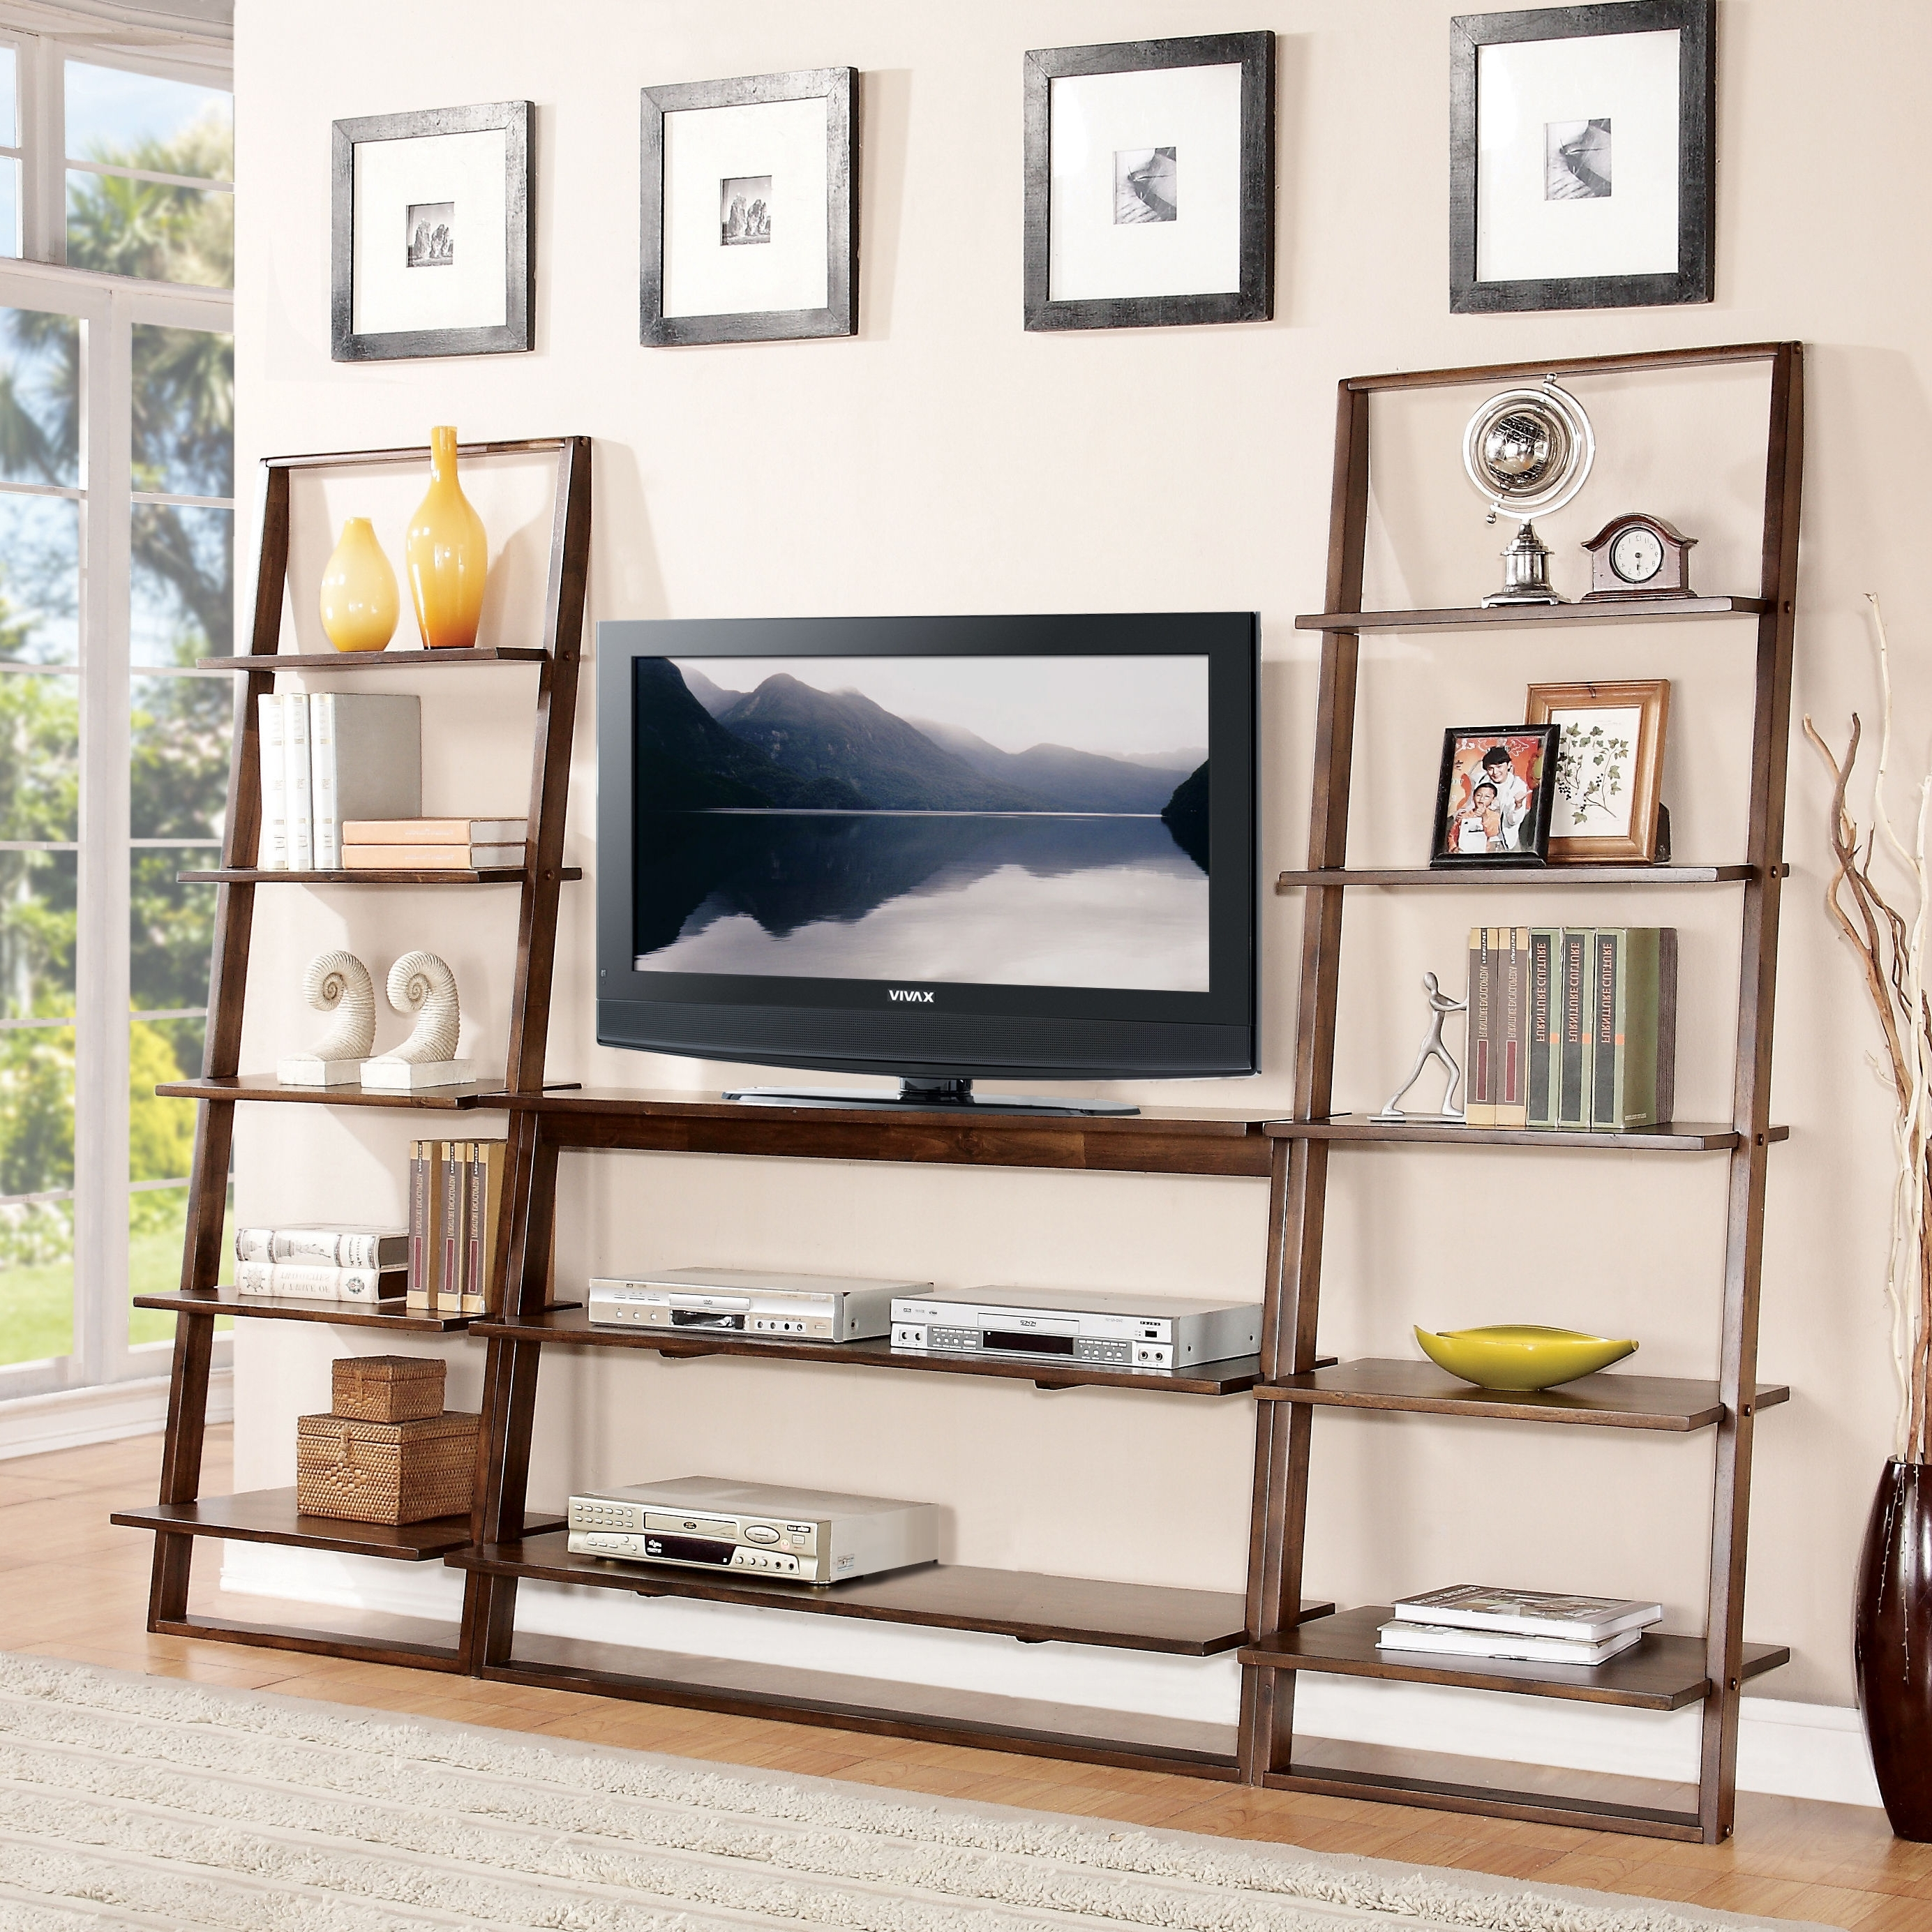 Most Recent Bookcases With Tv Space With Regard To Contemporary Leaning Bookcase Ideas: Minimalist Leaning Bookcase (View 9 of 15)